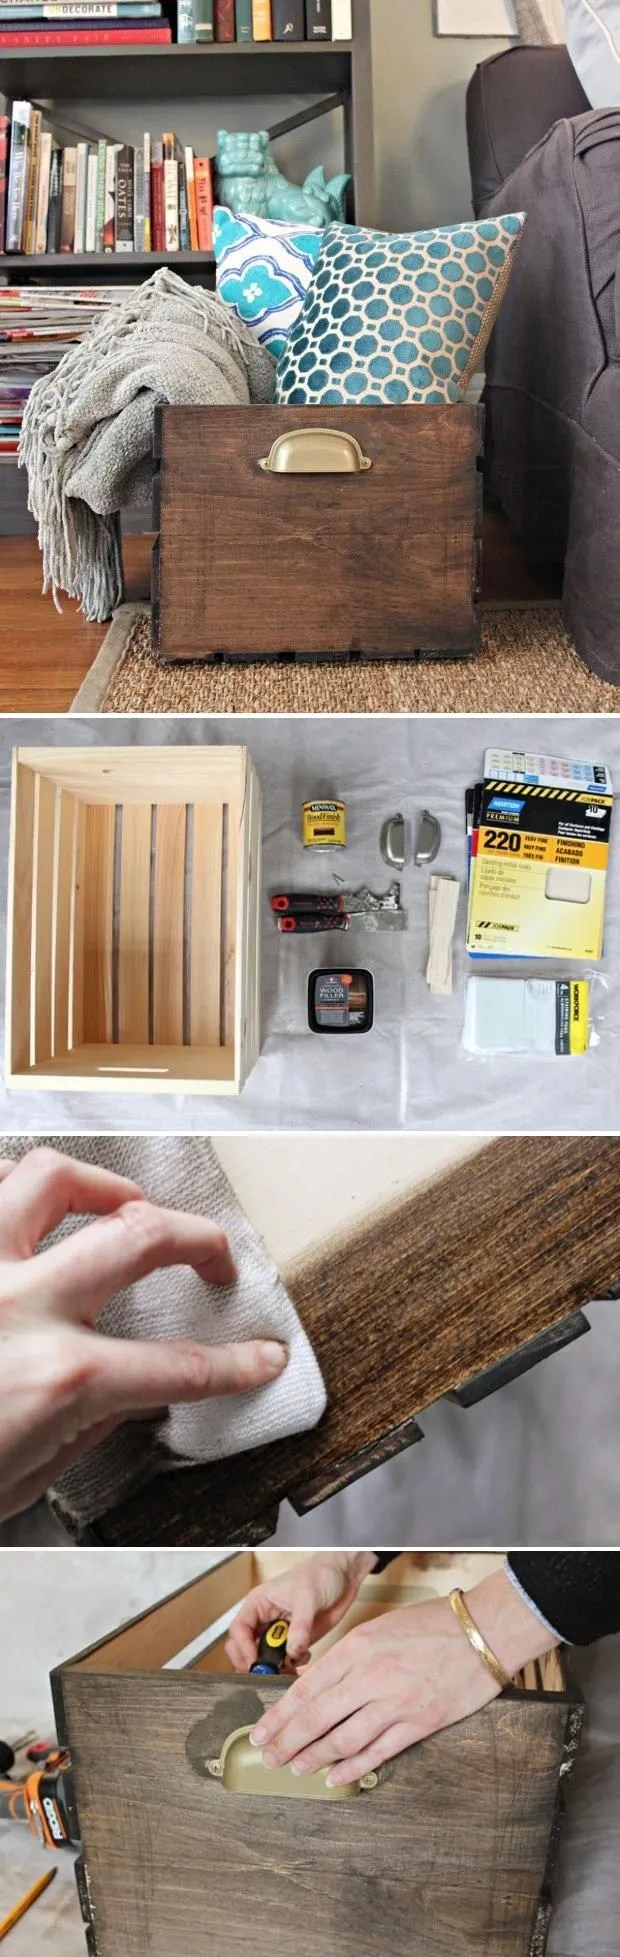 29 Ways To Be Sustainable by Decorating With Wooden Crates  usefuldiyprojects.com decor ideas (4)